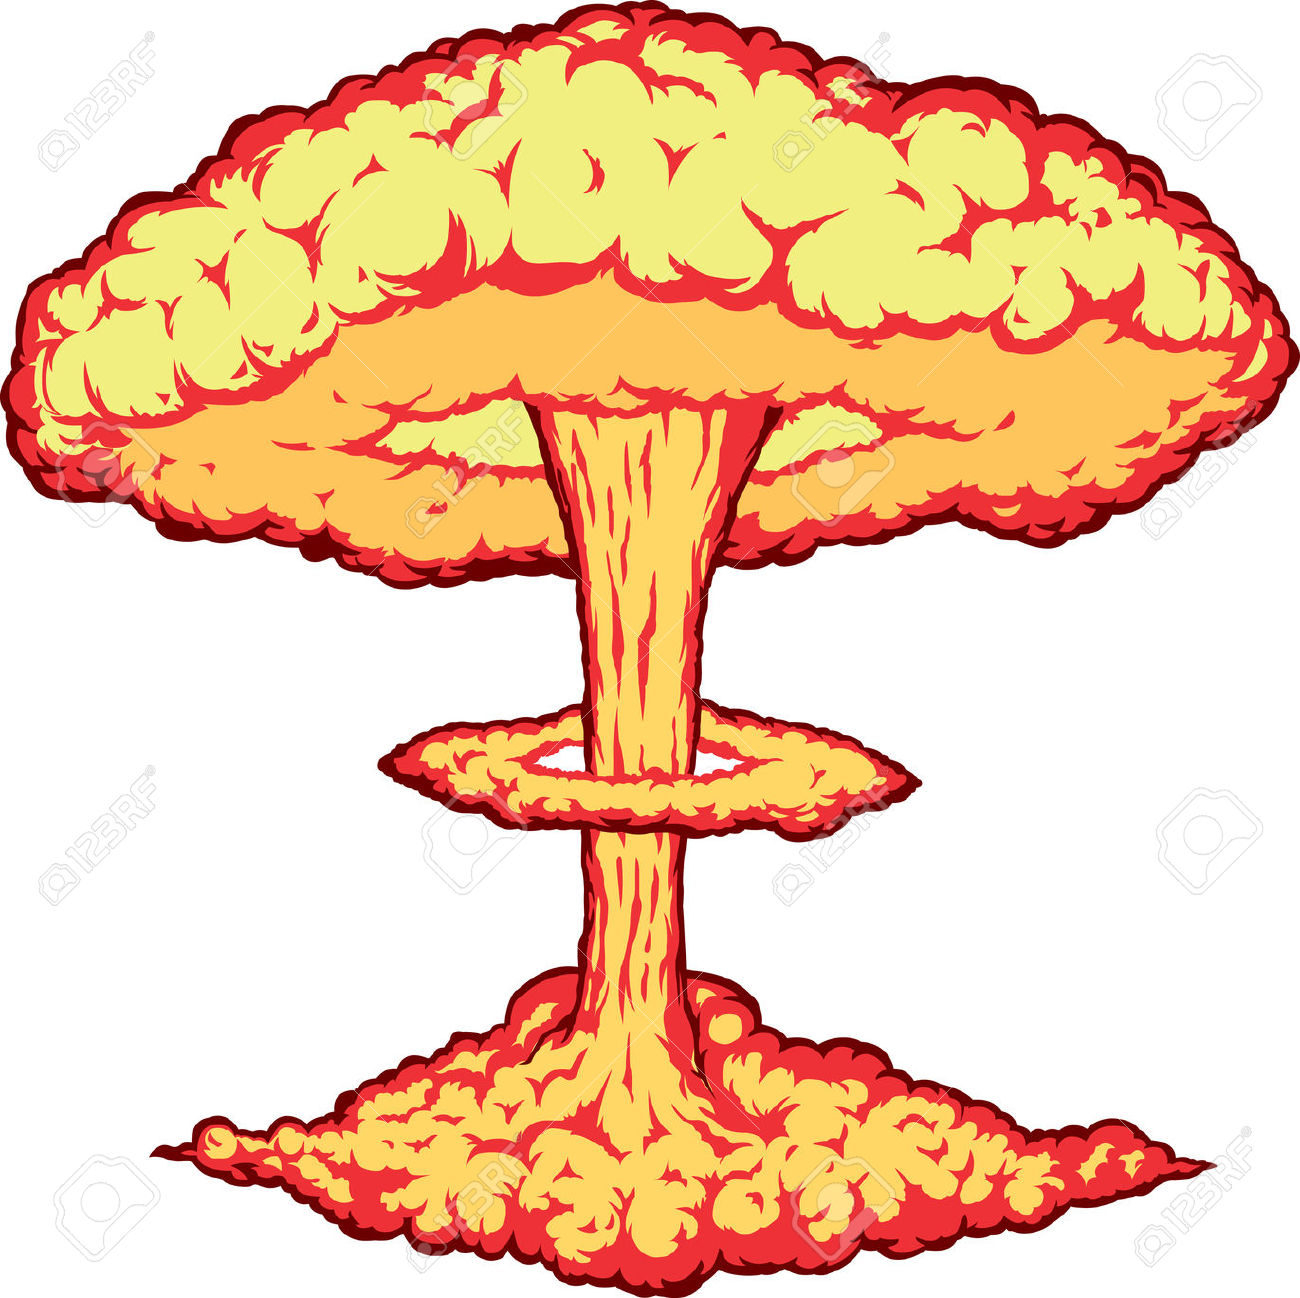 Bomb clipart explosion. Nuclear